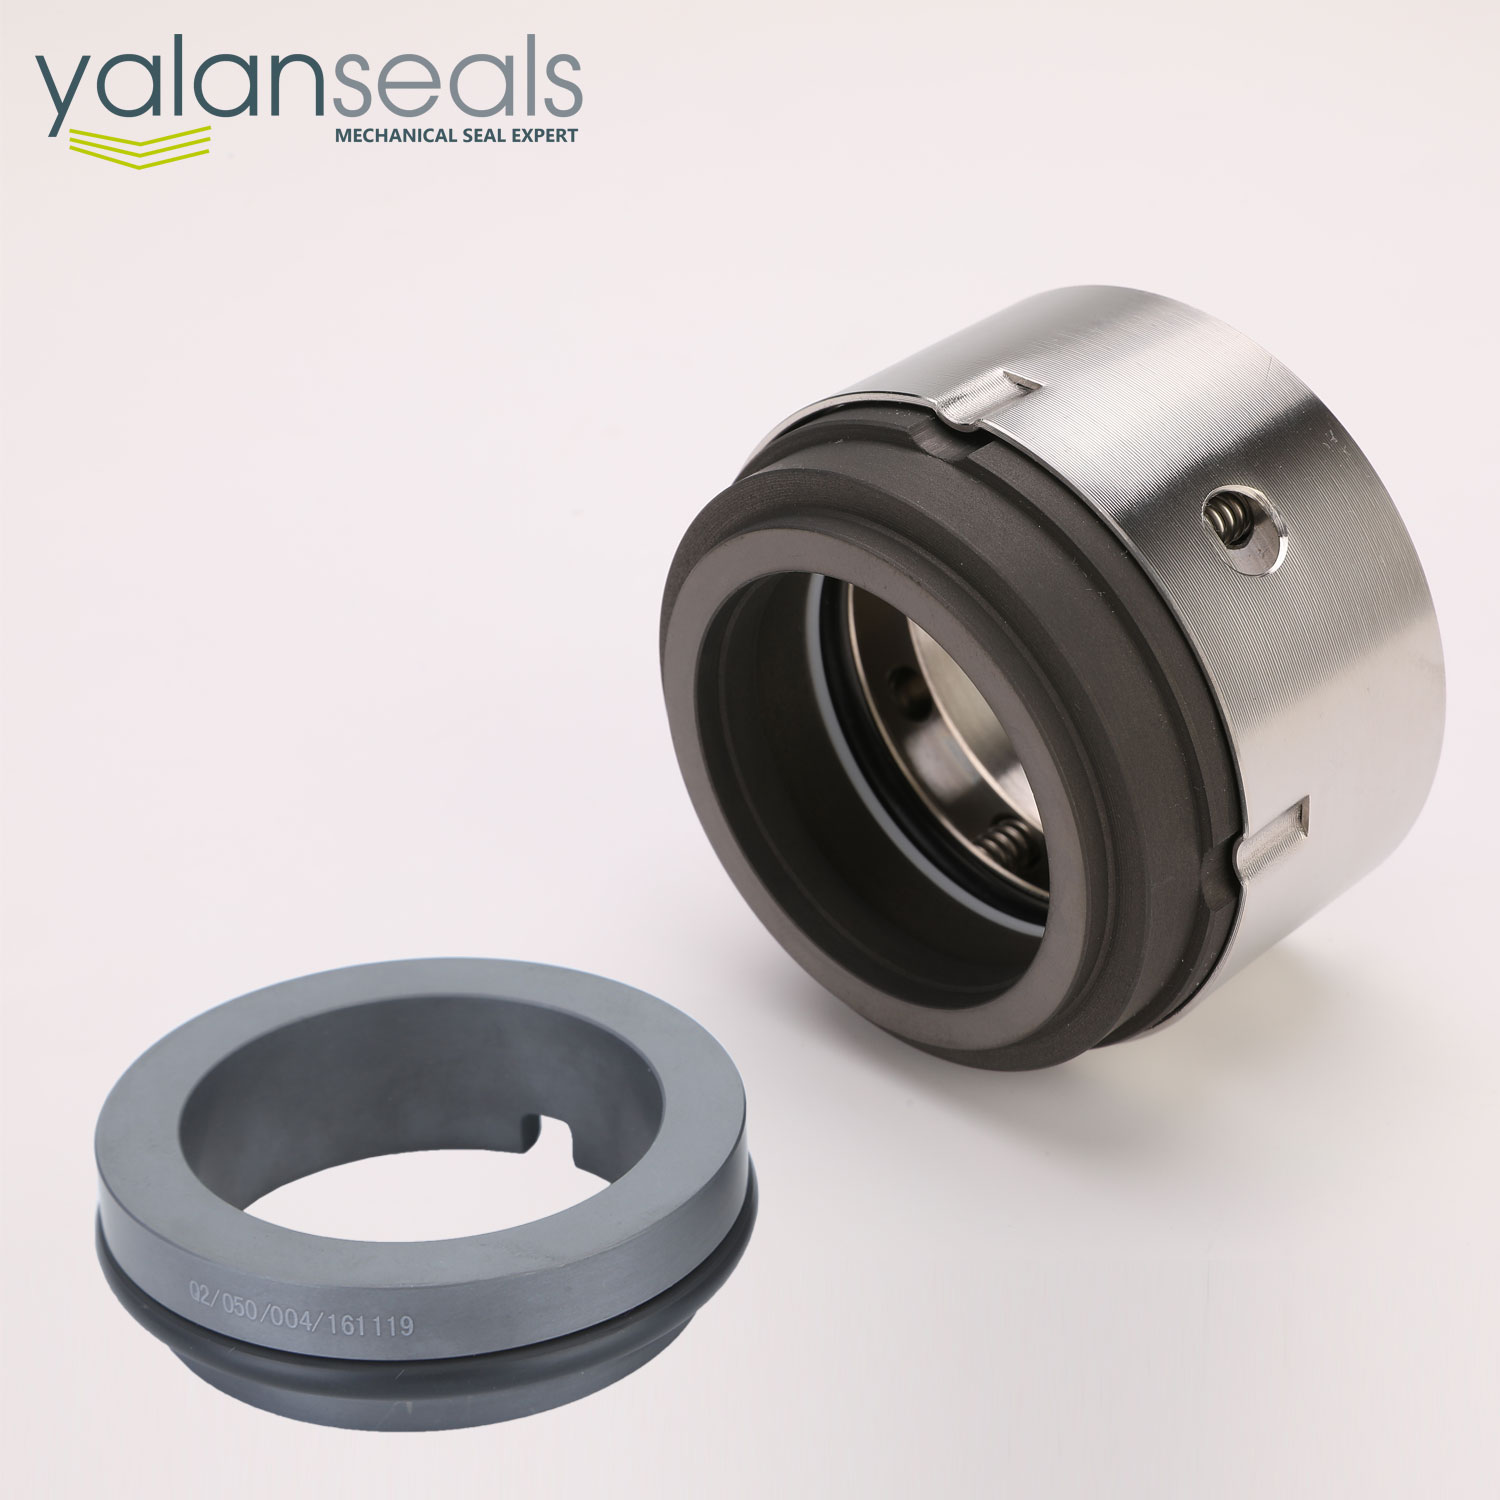 Type 523 Mechanical Seal